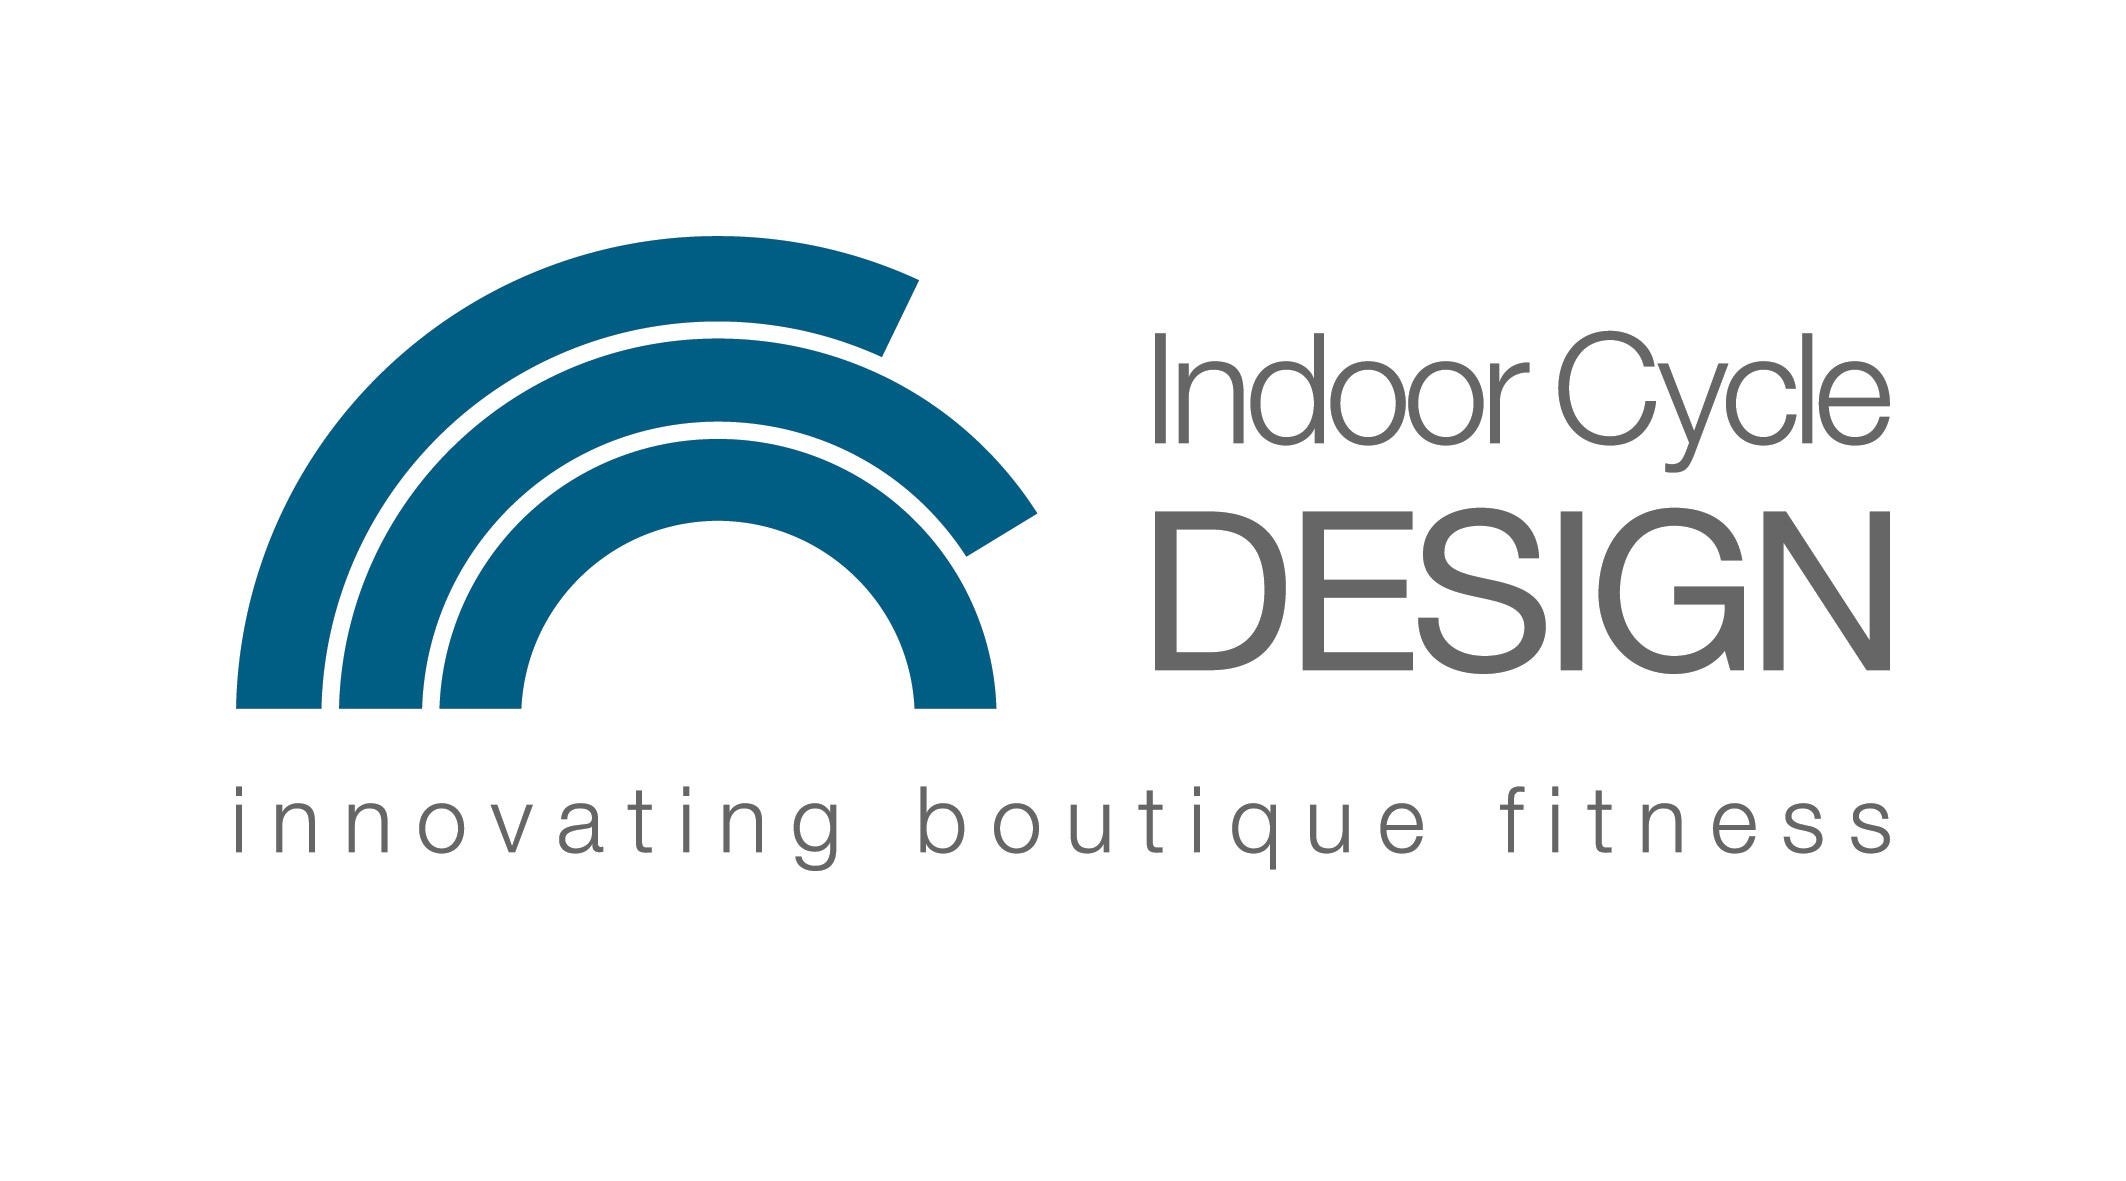 Indoor cycle design ihrsa club business exchange for Indoor cycle design